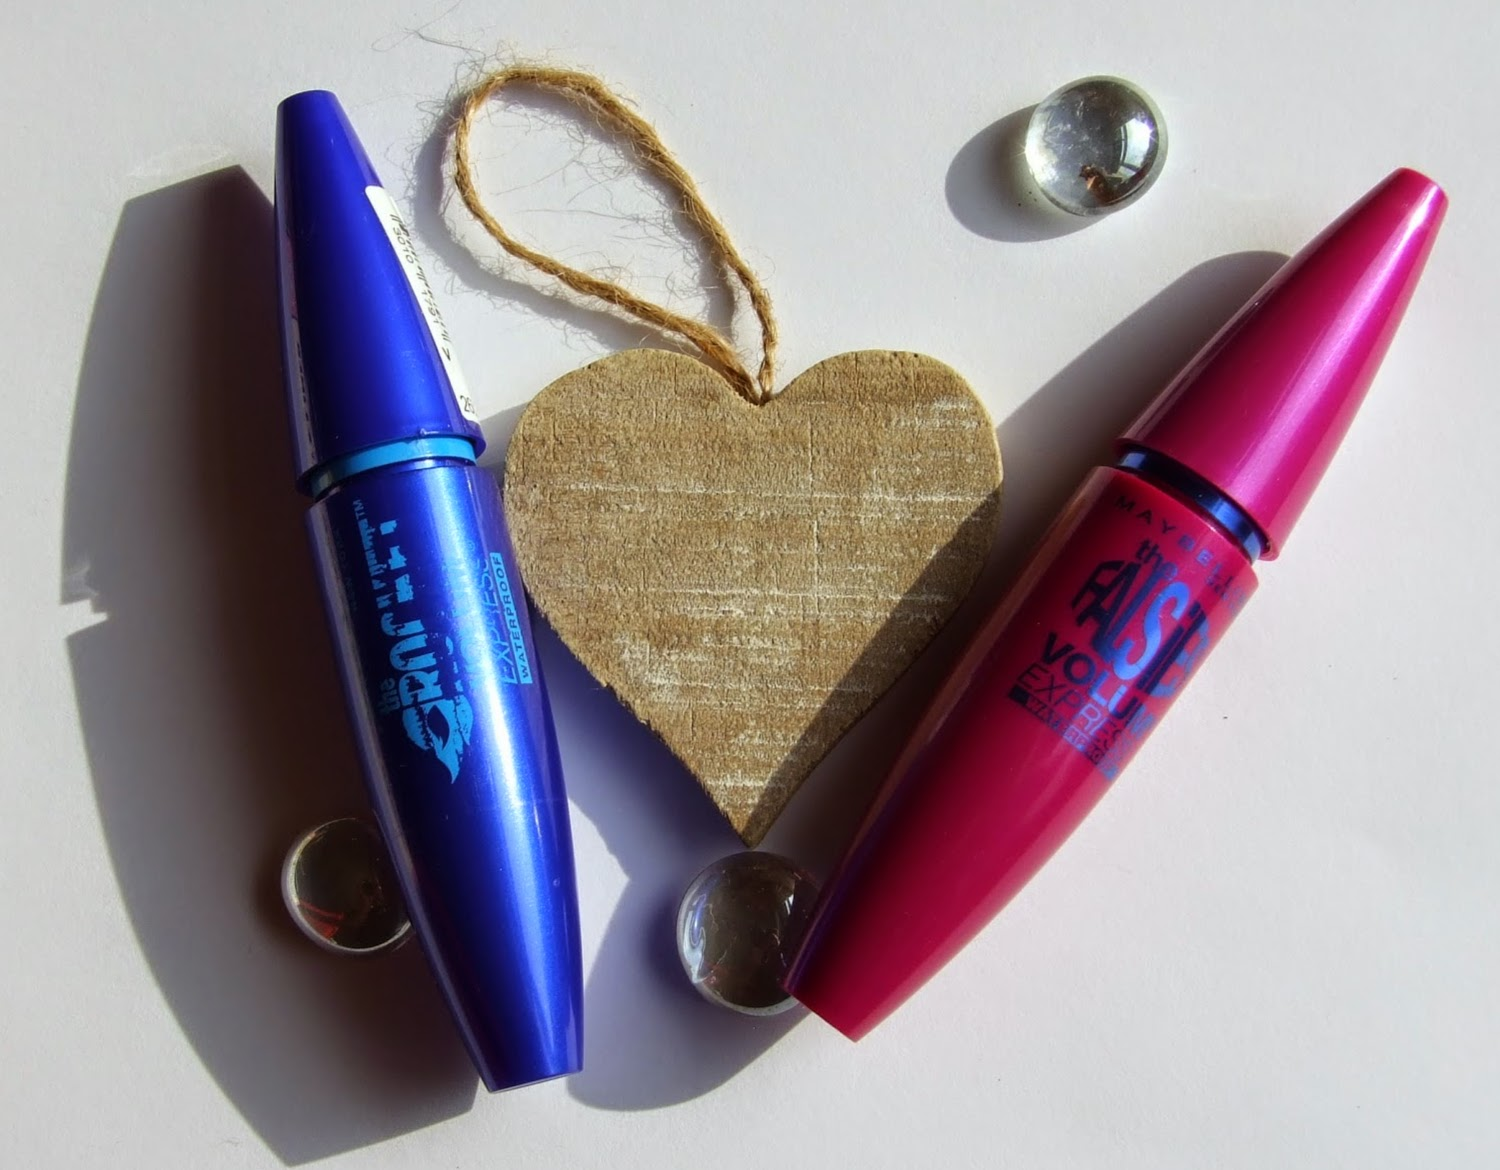 maybelline The falsies Rocket Mascara Waterproof beauty blog